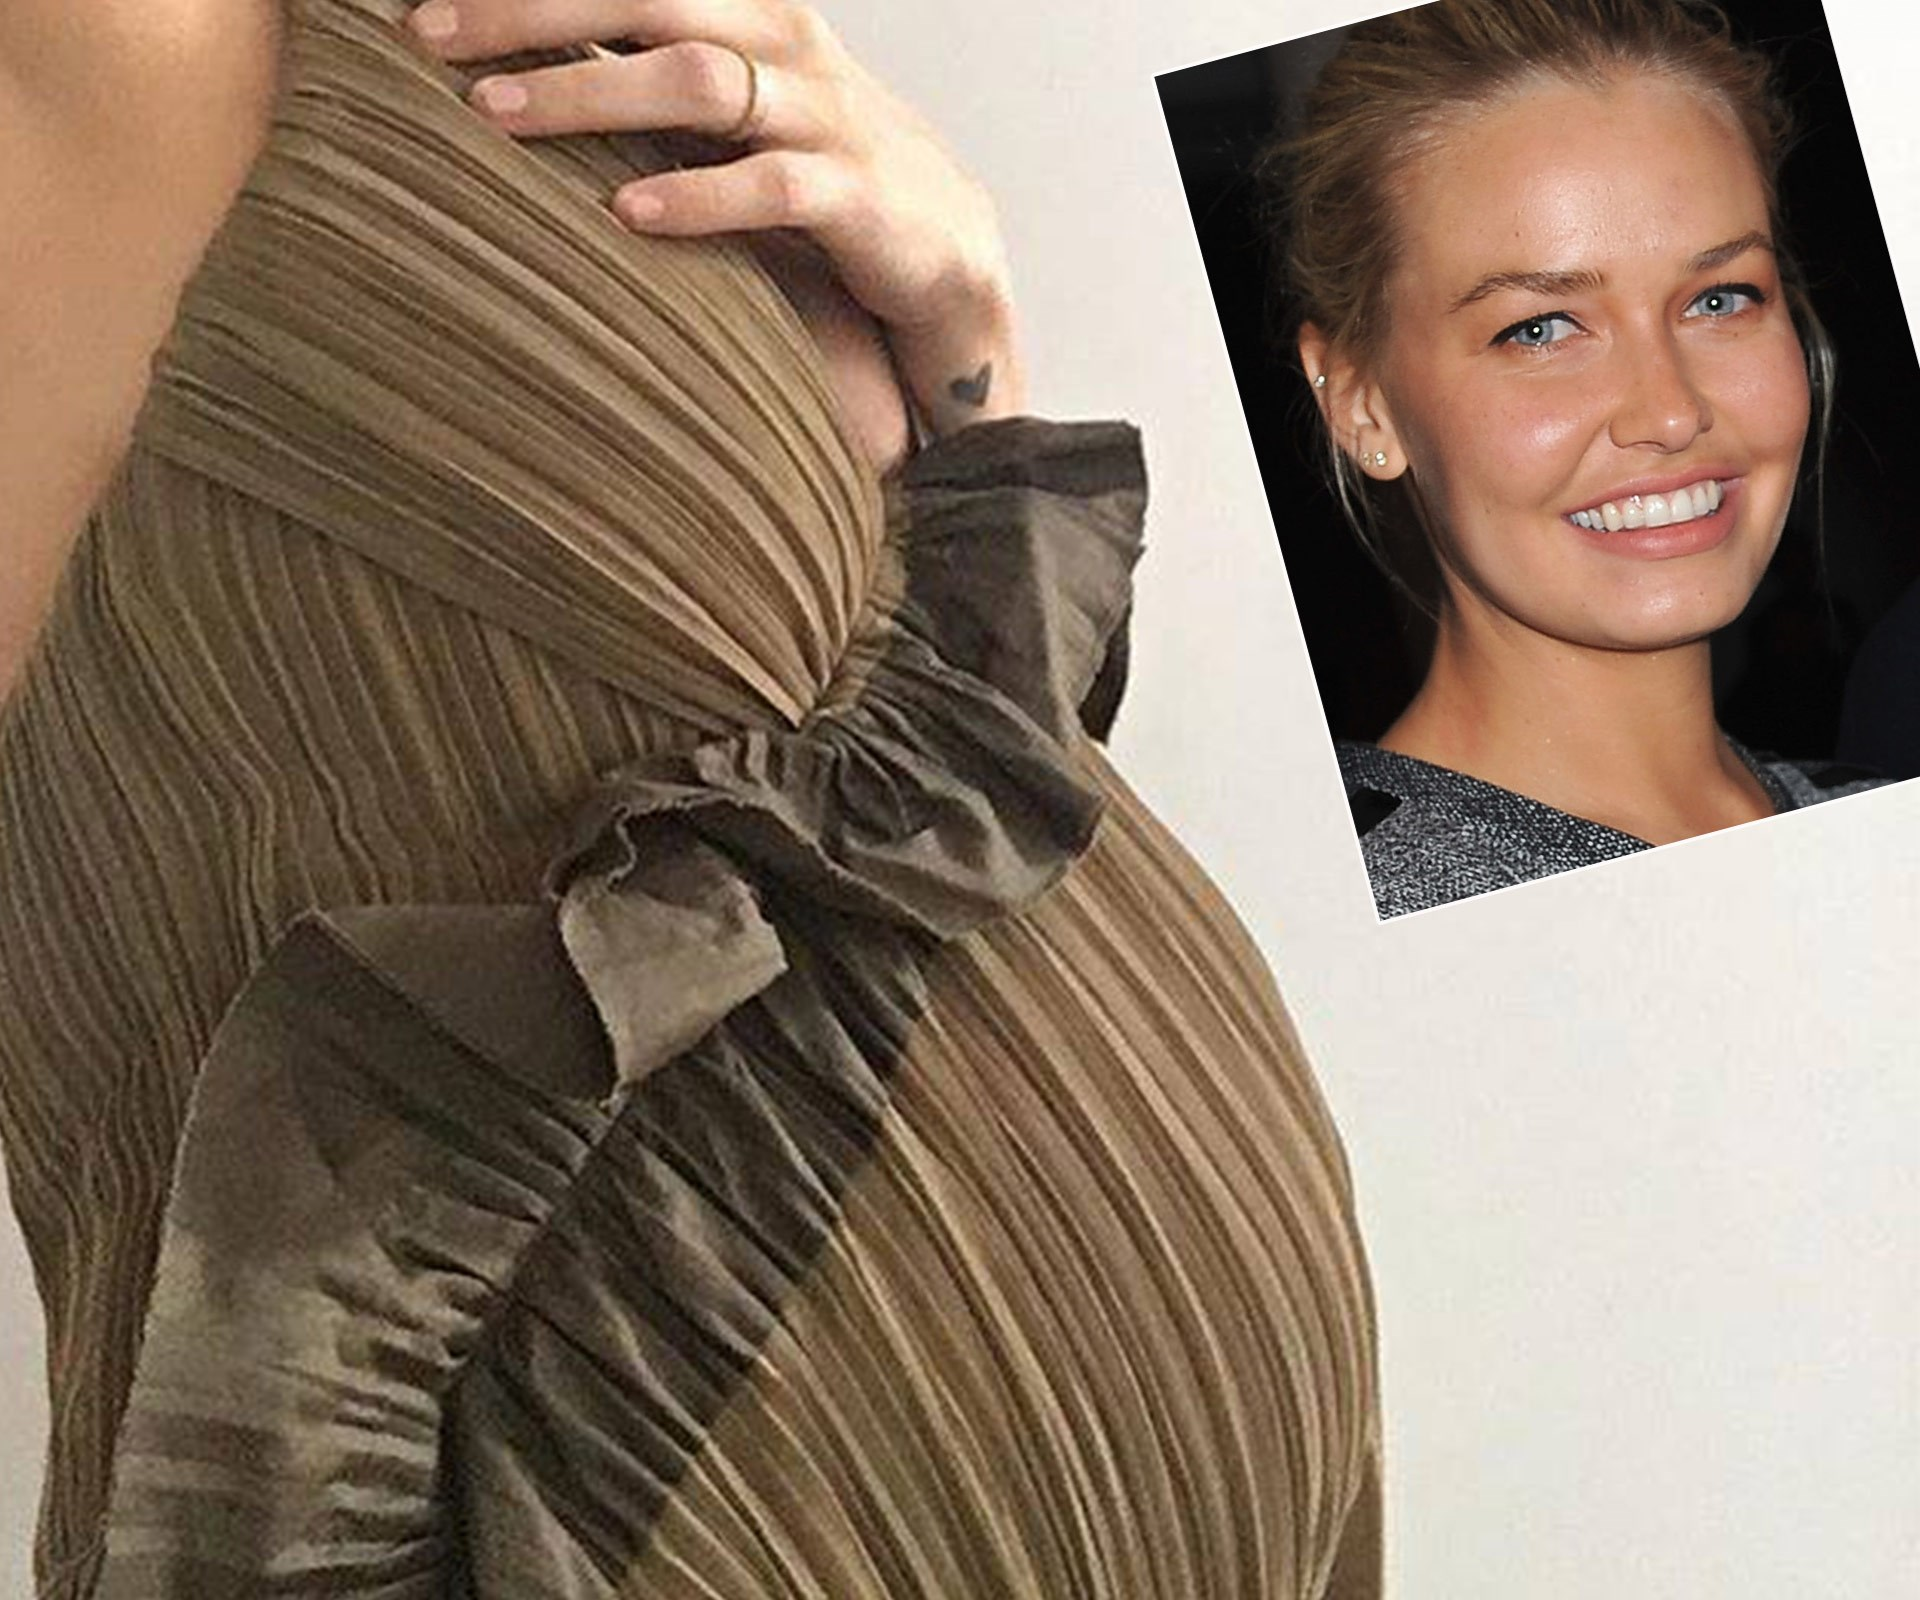 """She's on the home stretch! Pregnant with her second child to husband Sam Worthington, Lara Bingle shared this close-up snap of her growing belly. """"#almostthere #babynumber2,"""" the model penned."""